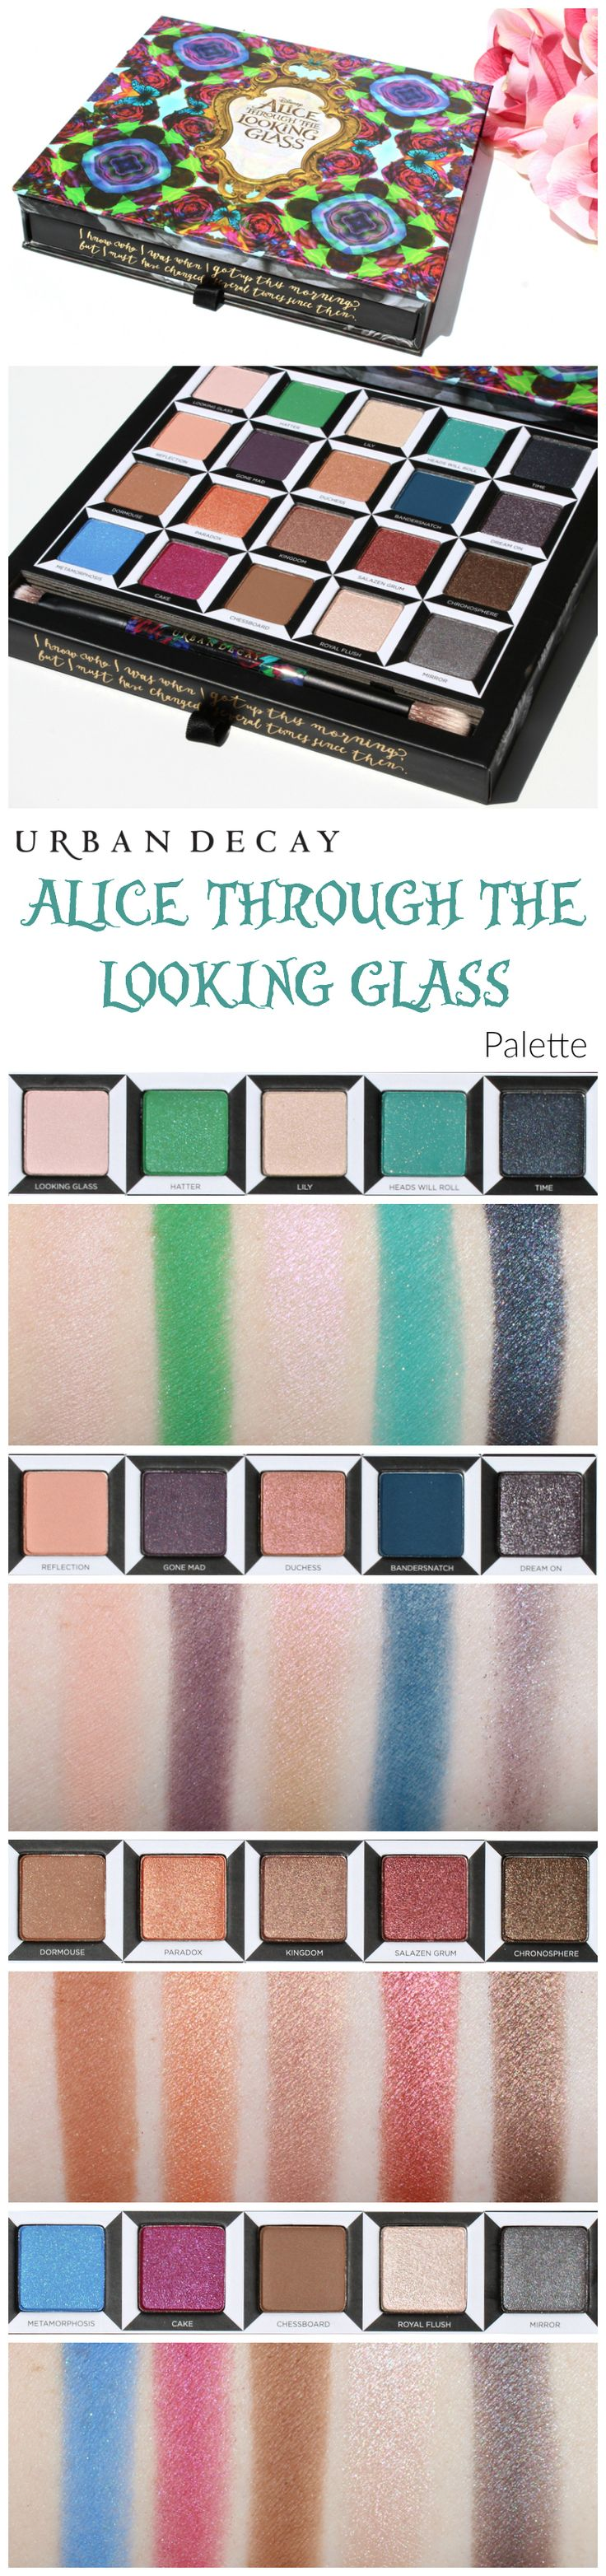 Urban Decay Alice Through The Looking Glass Palette Review, Photos, Swatches